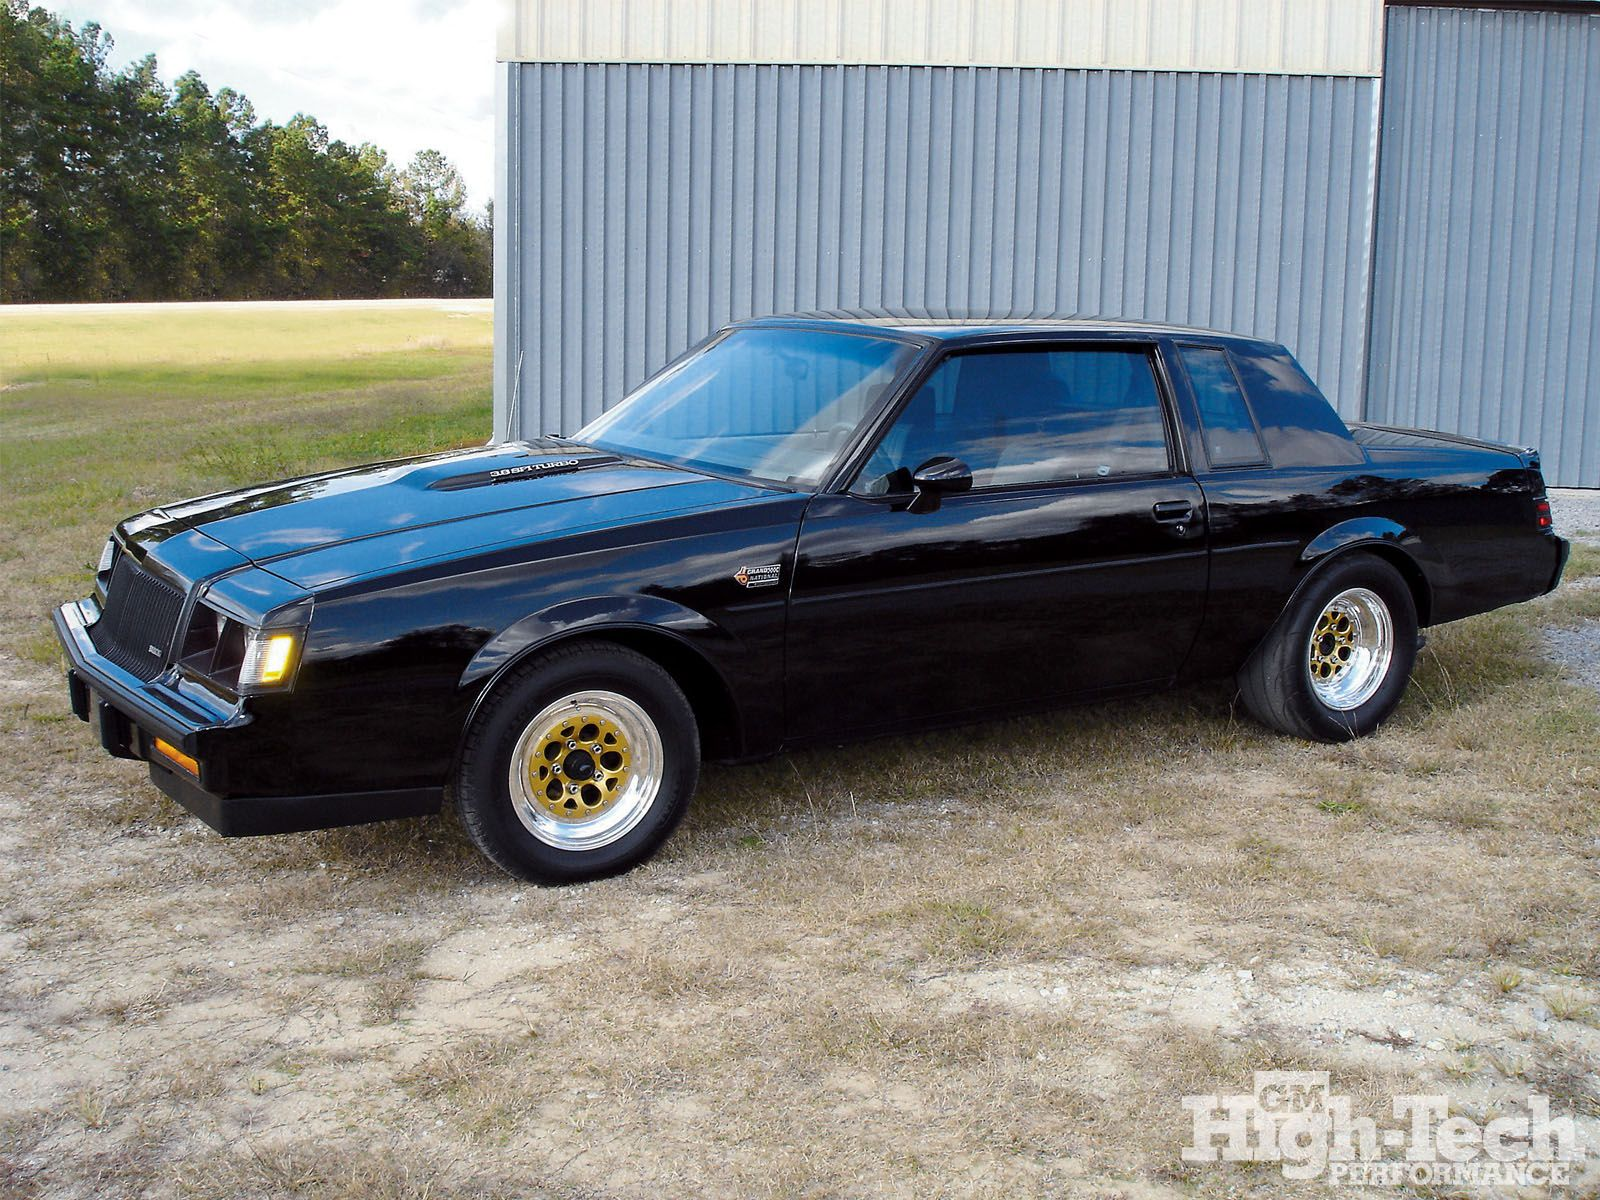 Grand national buick t top mht paragon split 5 star wheels chevys and more pinterest grand national buick and wheels